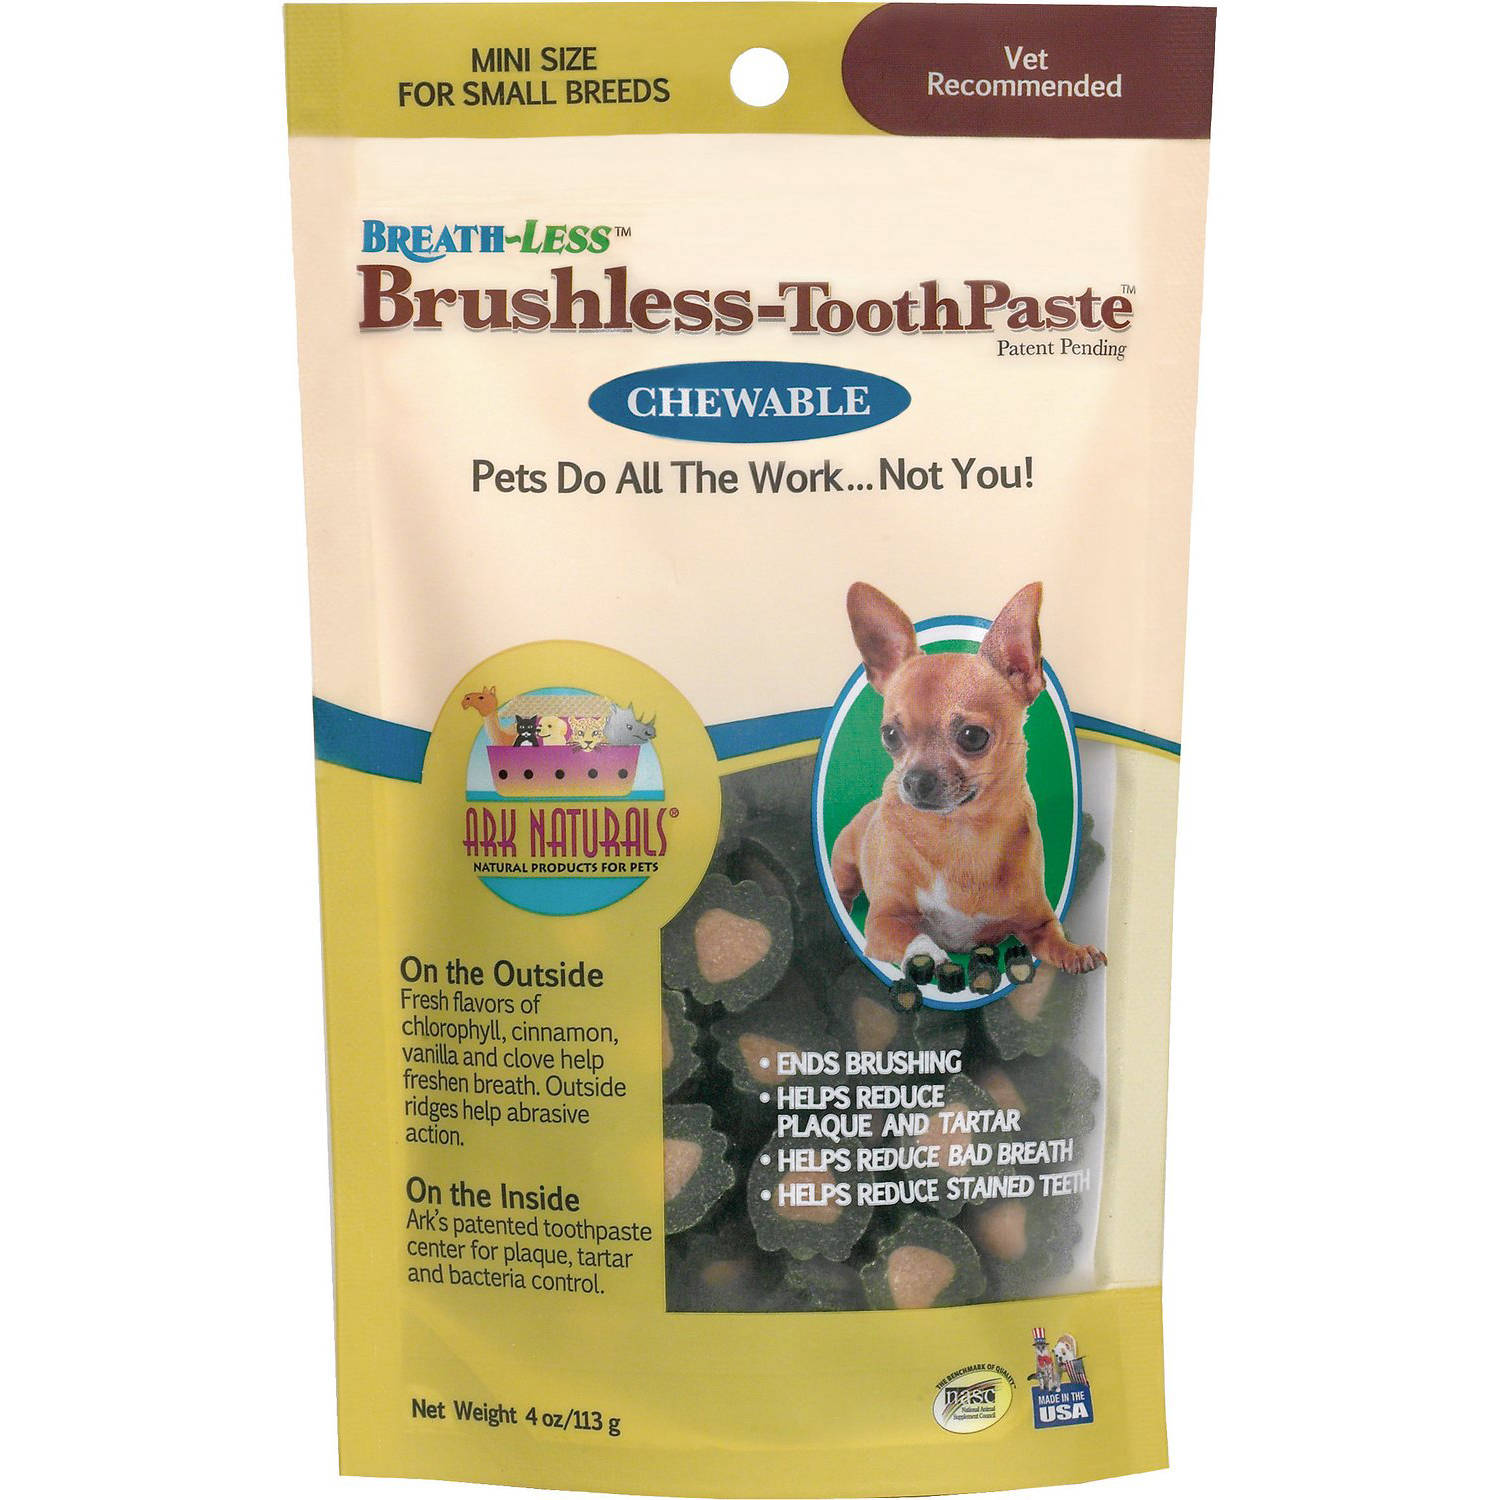 Ark Naturals Brushless-Toothpaste, Breath-Less, Small Breed Mini Chews, 4 oz